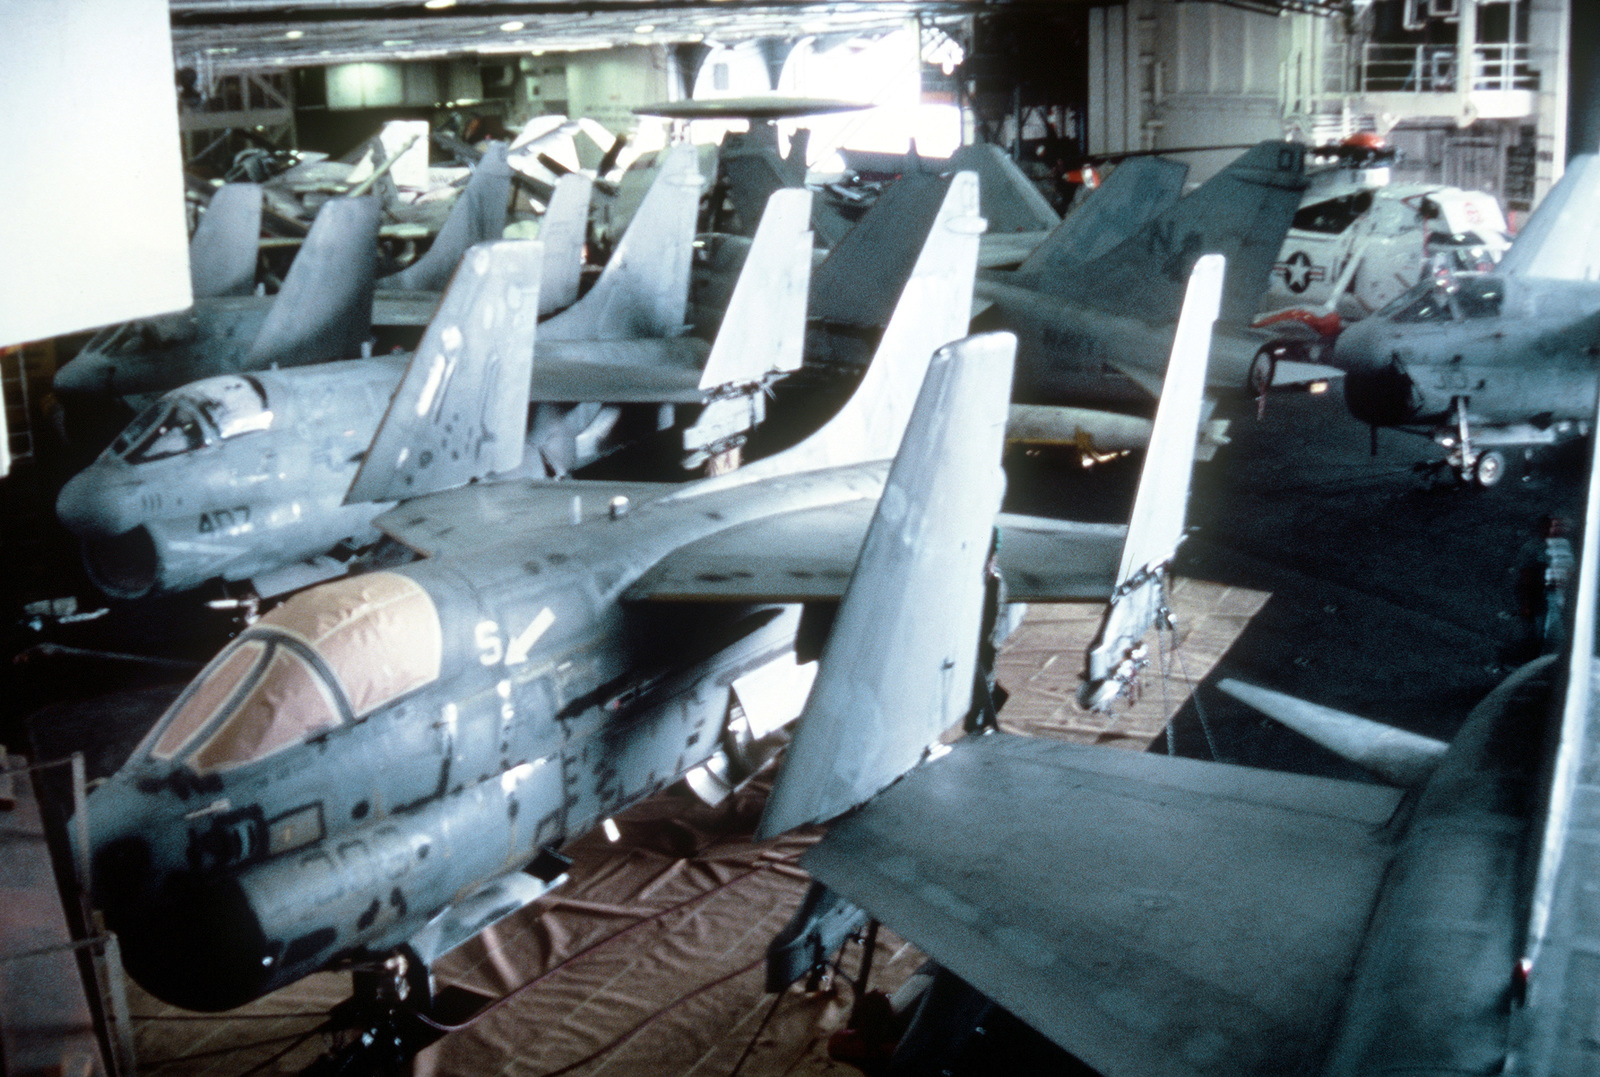 Interior view of the hangar deck, with parked A-7 Corsair II aircraft, aboard the nuclear-powered aircraft carrier USS CARL VINSON (CVN 70)